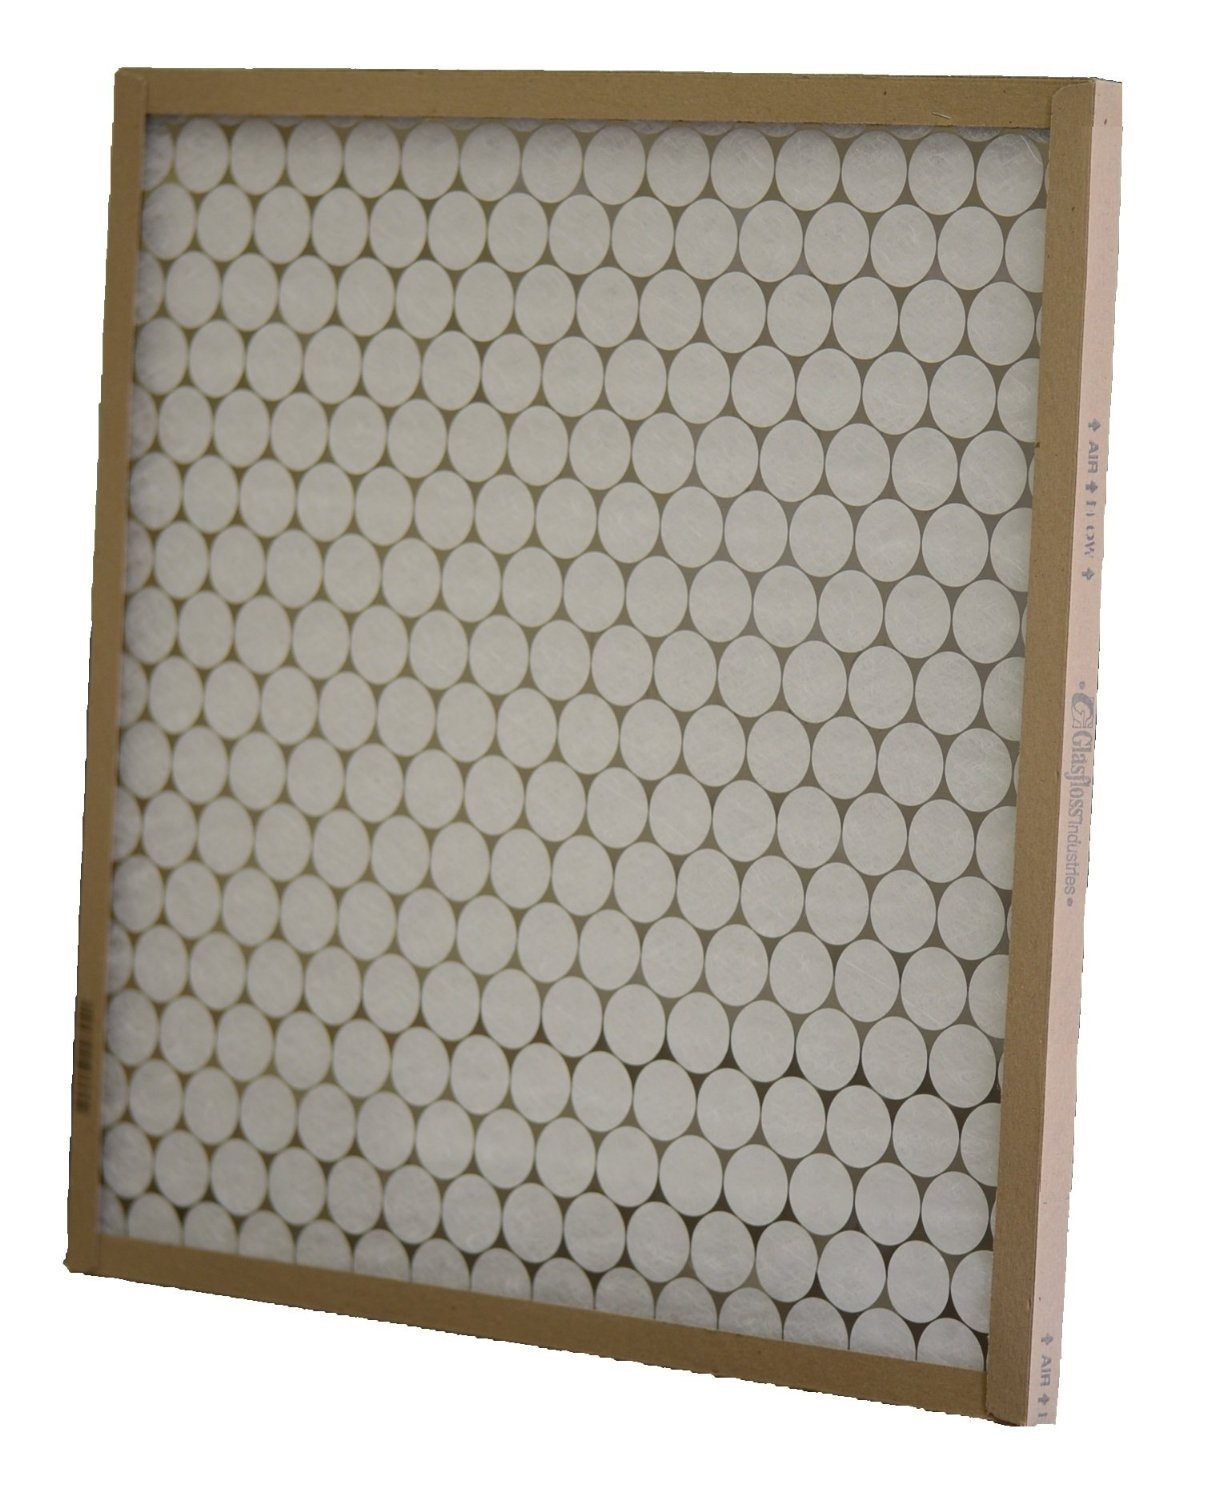 Glasfloss Industries PTA18181 PTA Series Heavy Duty Disposable Panel Air Filter, 12-Case by Glasfloss Industries  B0062AEEUE